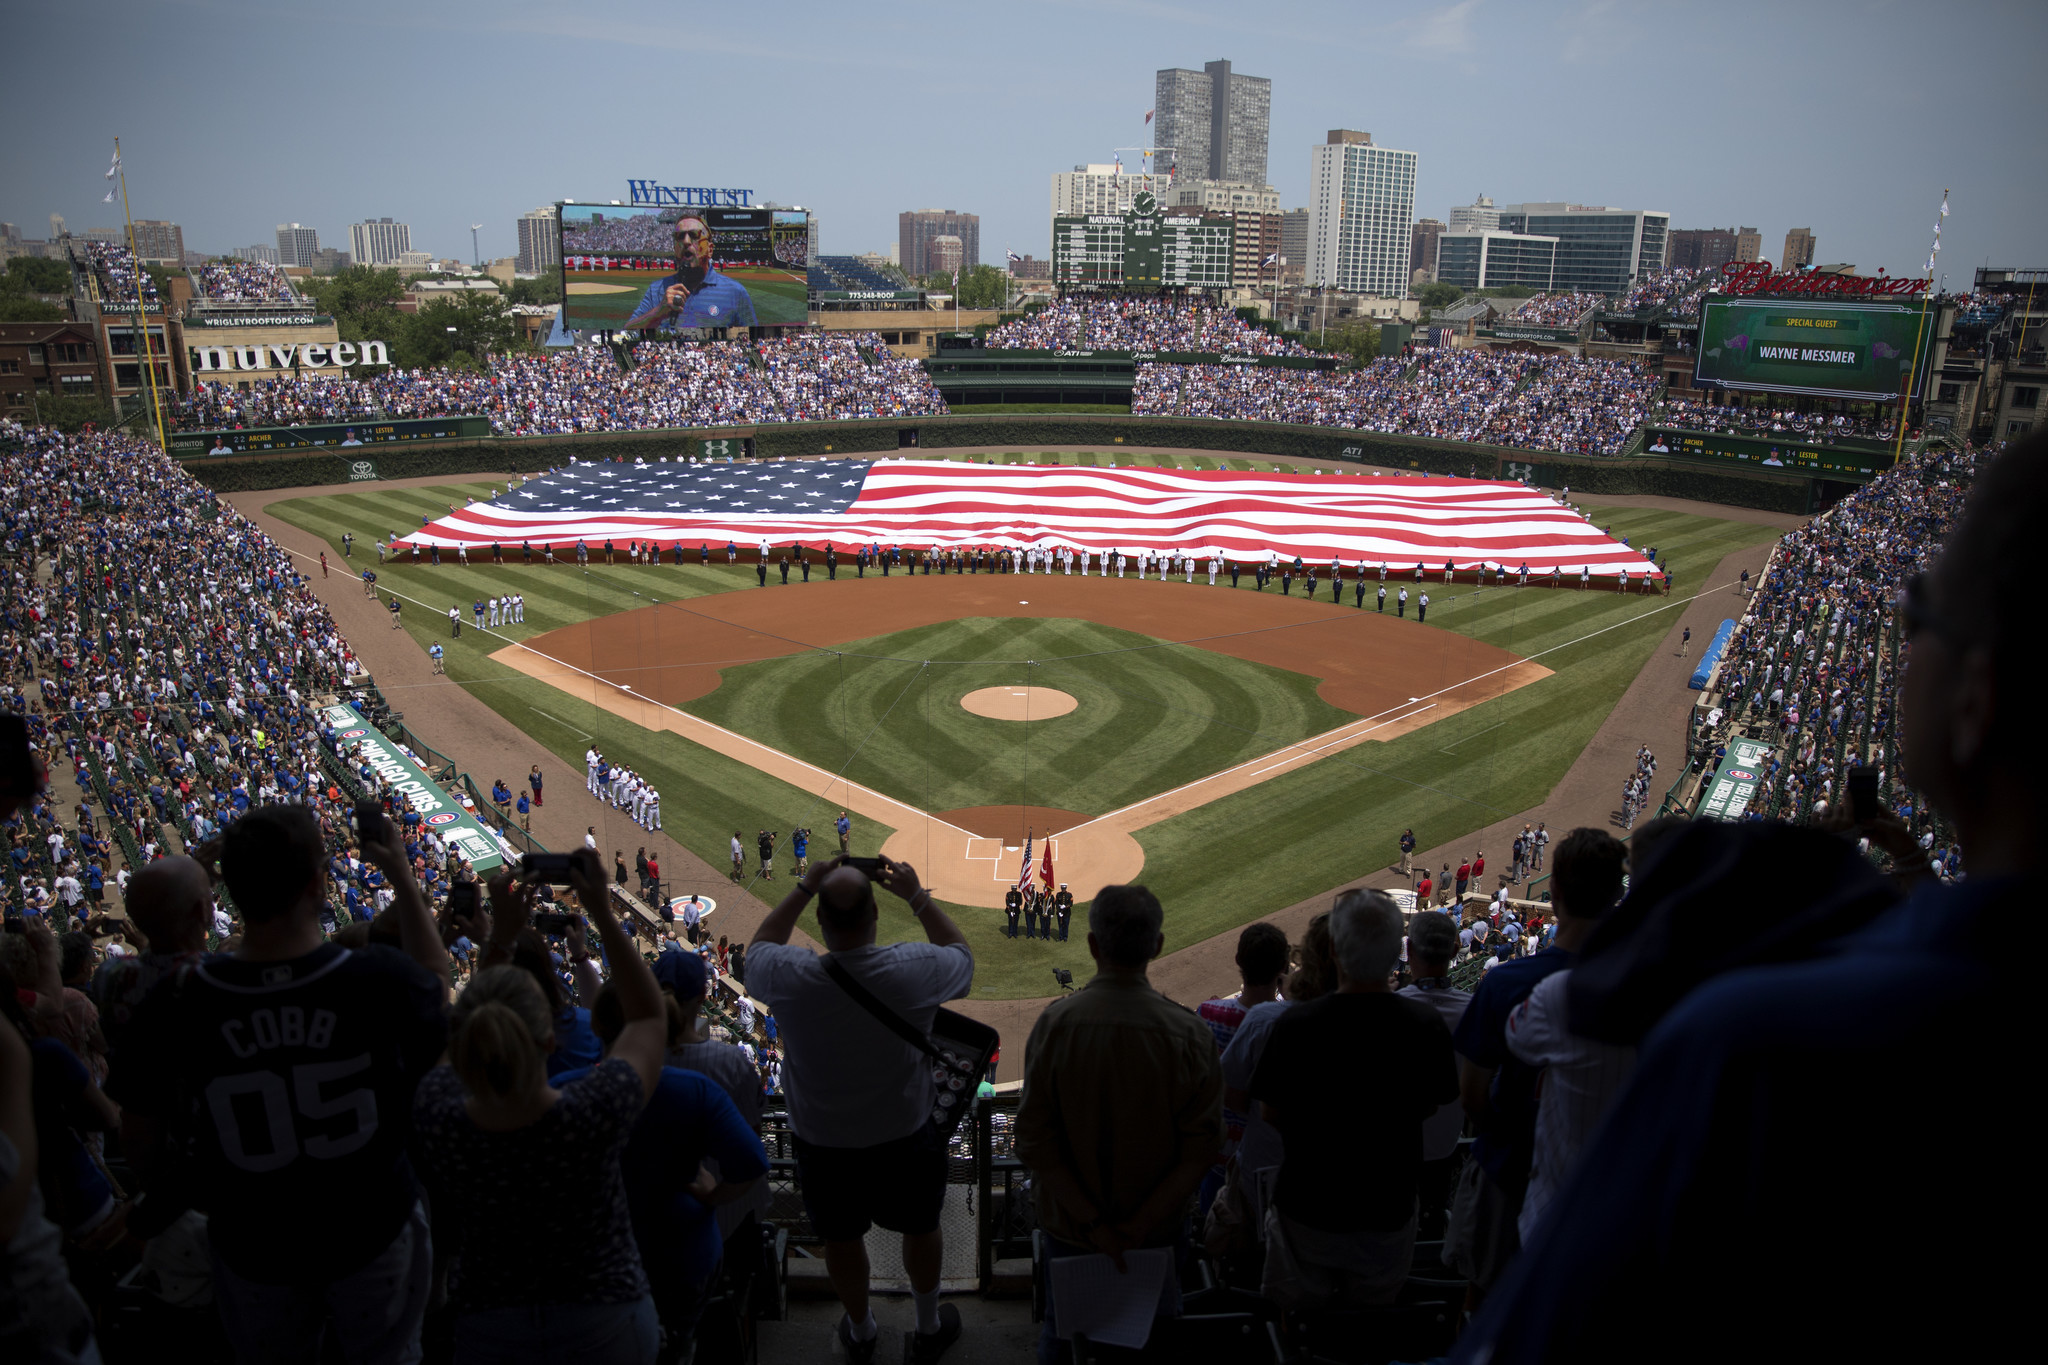 View behind home plate of Wrigley Field during their all-star game